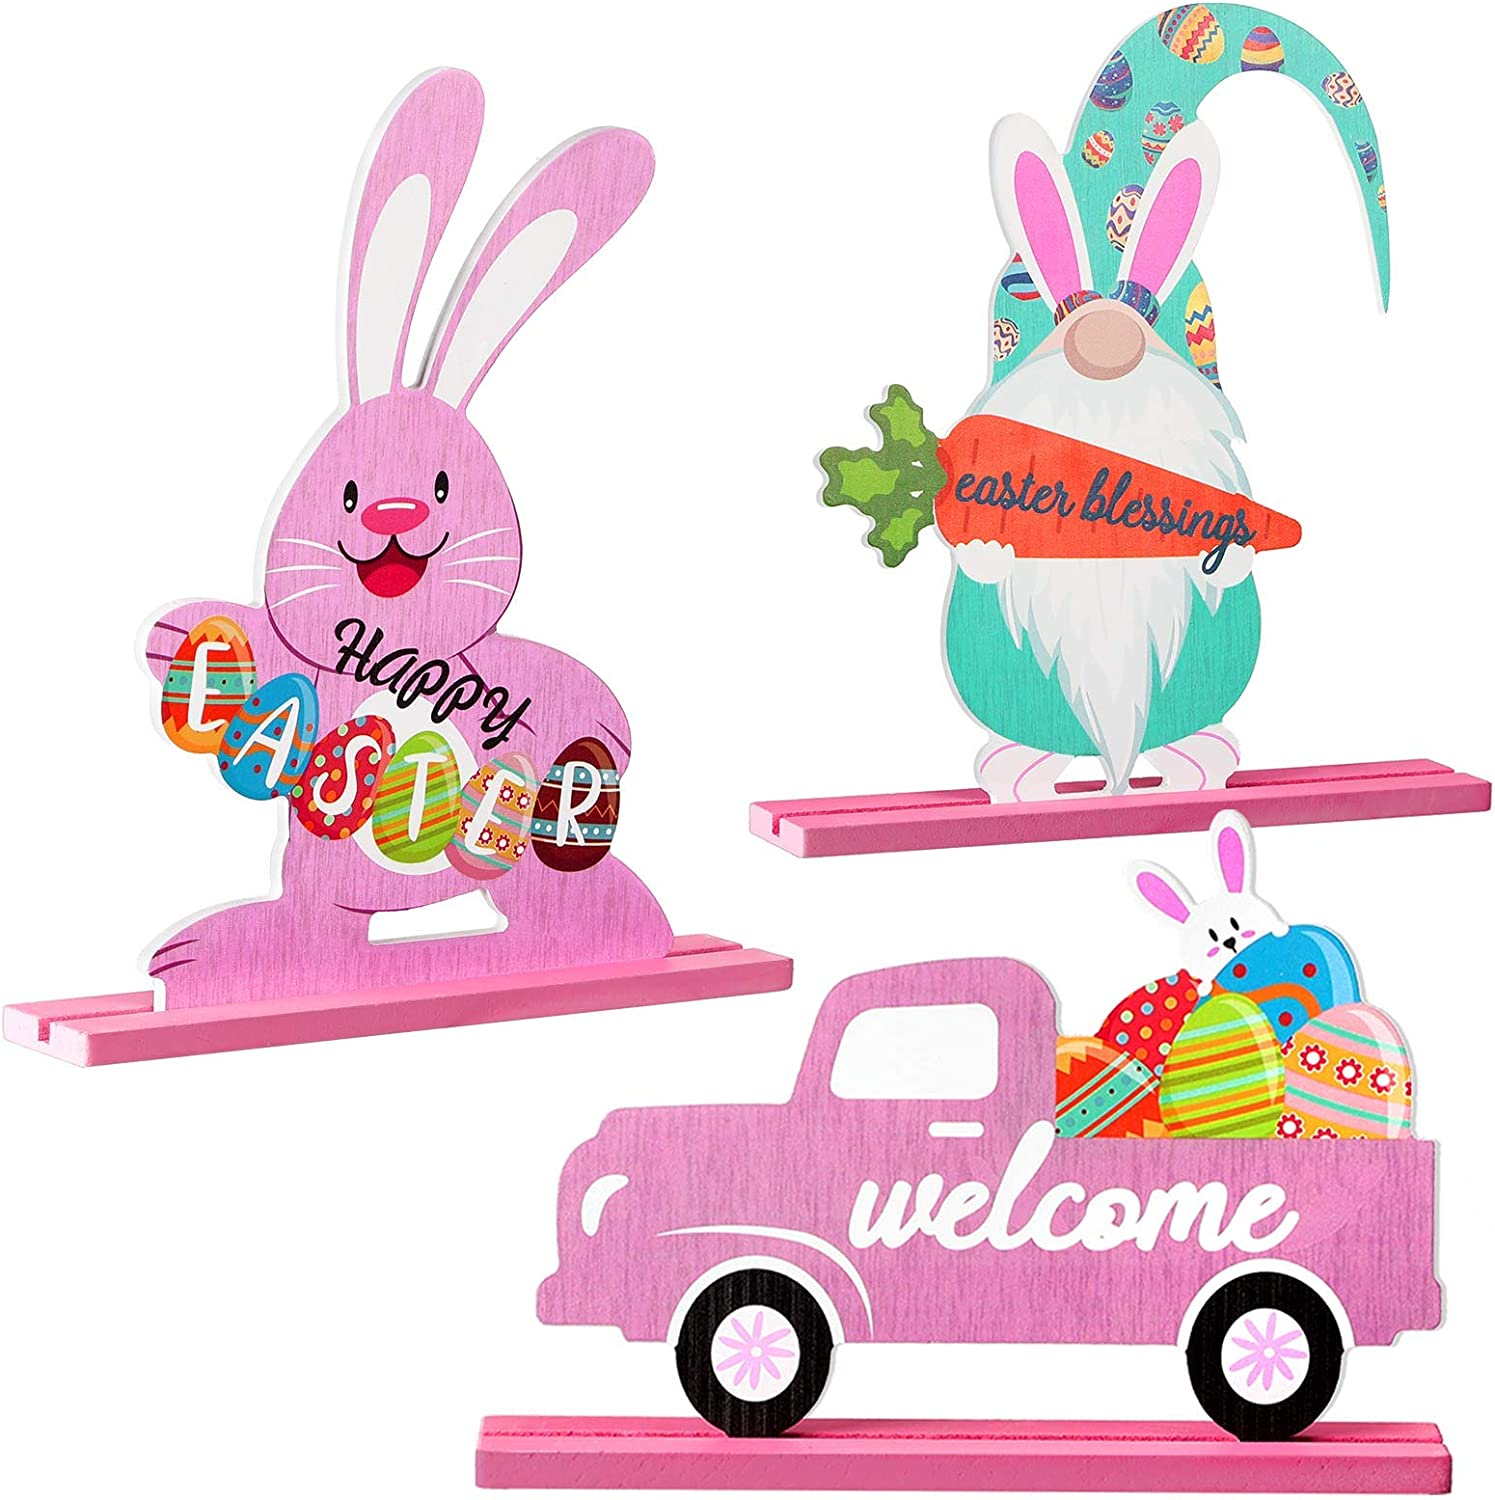 Jetec 3 Pieces Happy Easter Table Decoration Signs Bunny Table Centerpiece Easter Gnome Tabletop Decoration Easter Truck Wood Decor for Easter Home Office Party Decorations